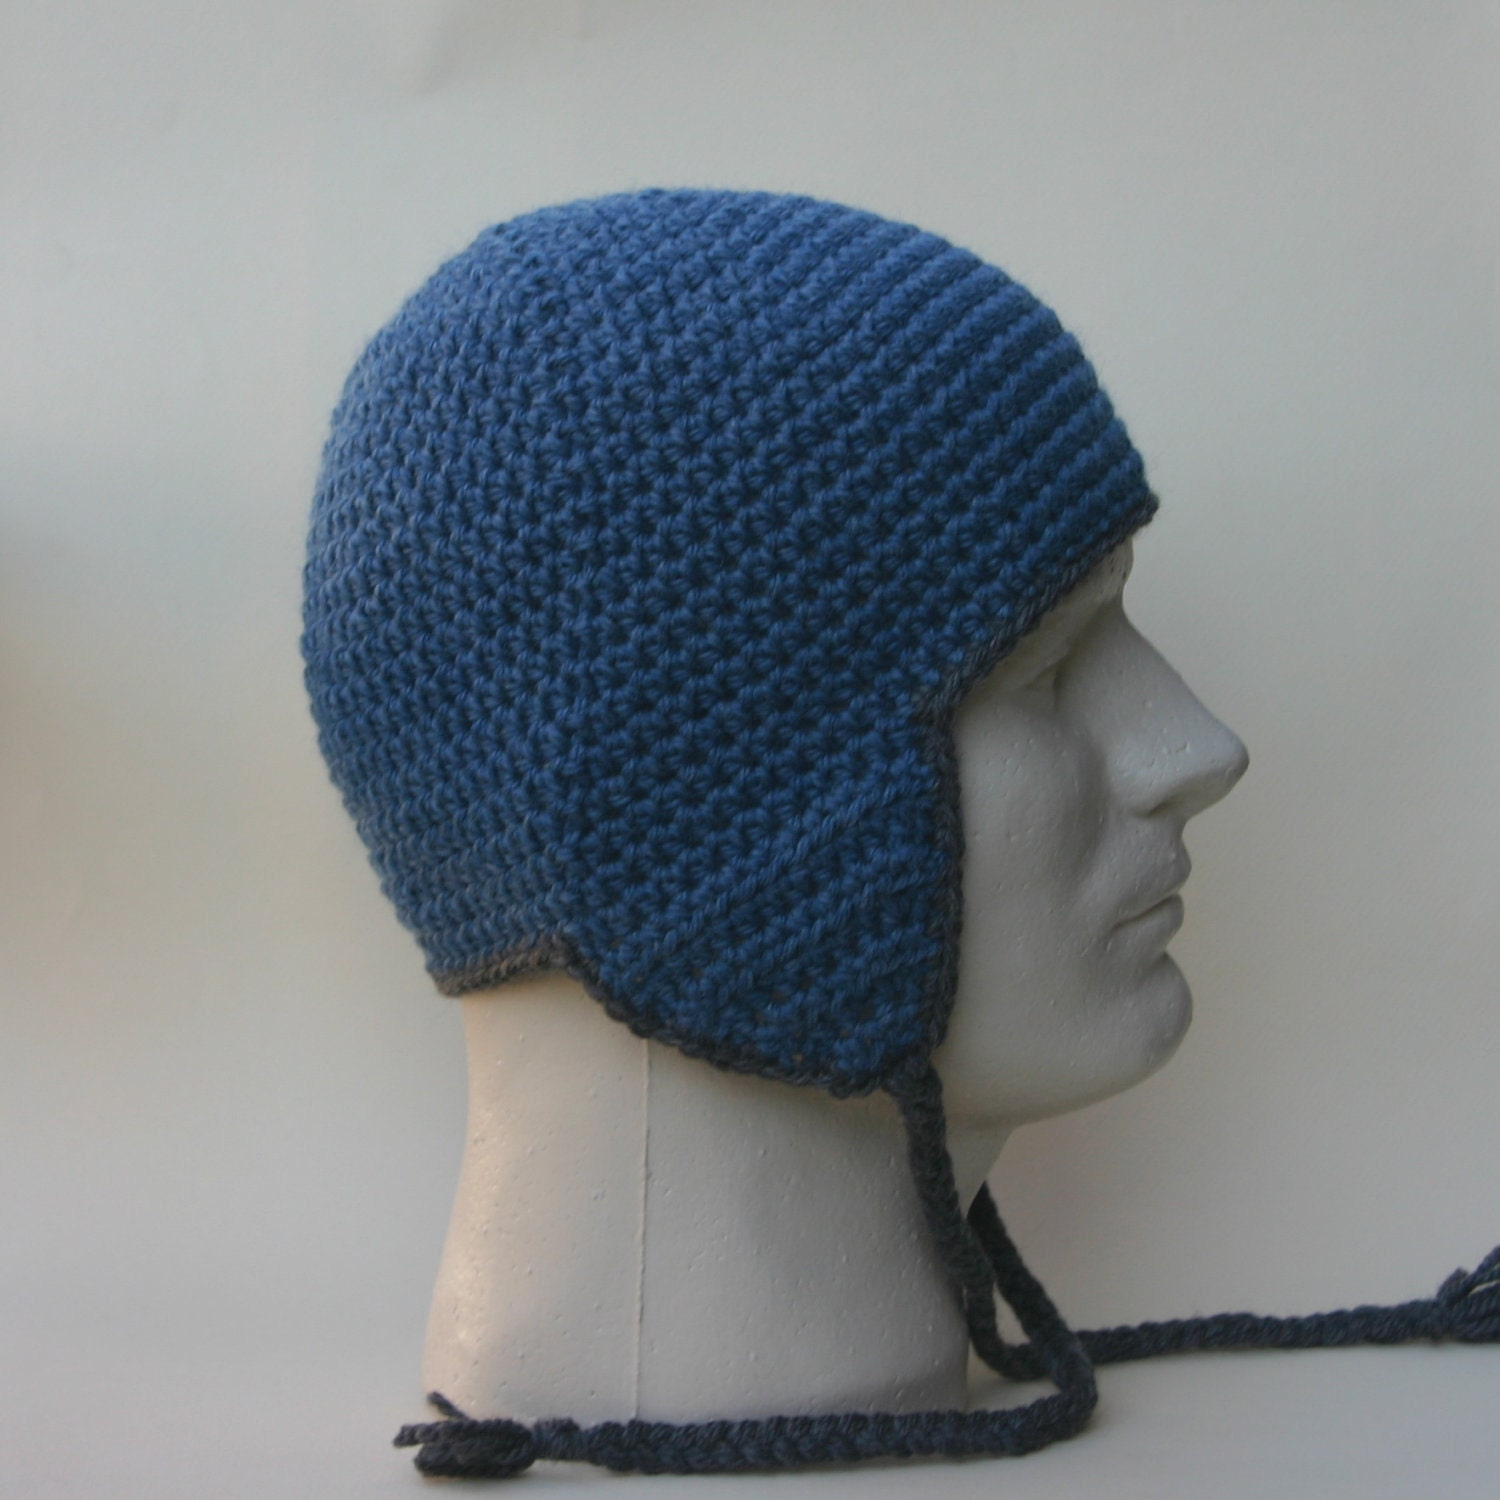 Crochet Patterns Hat With Ear Flaps : Crochet Hats For Men With Ear Flaps